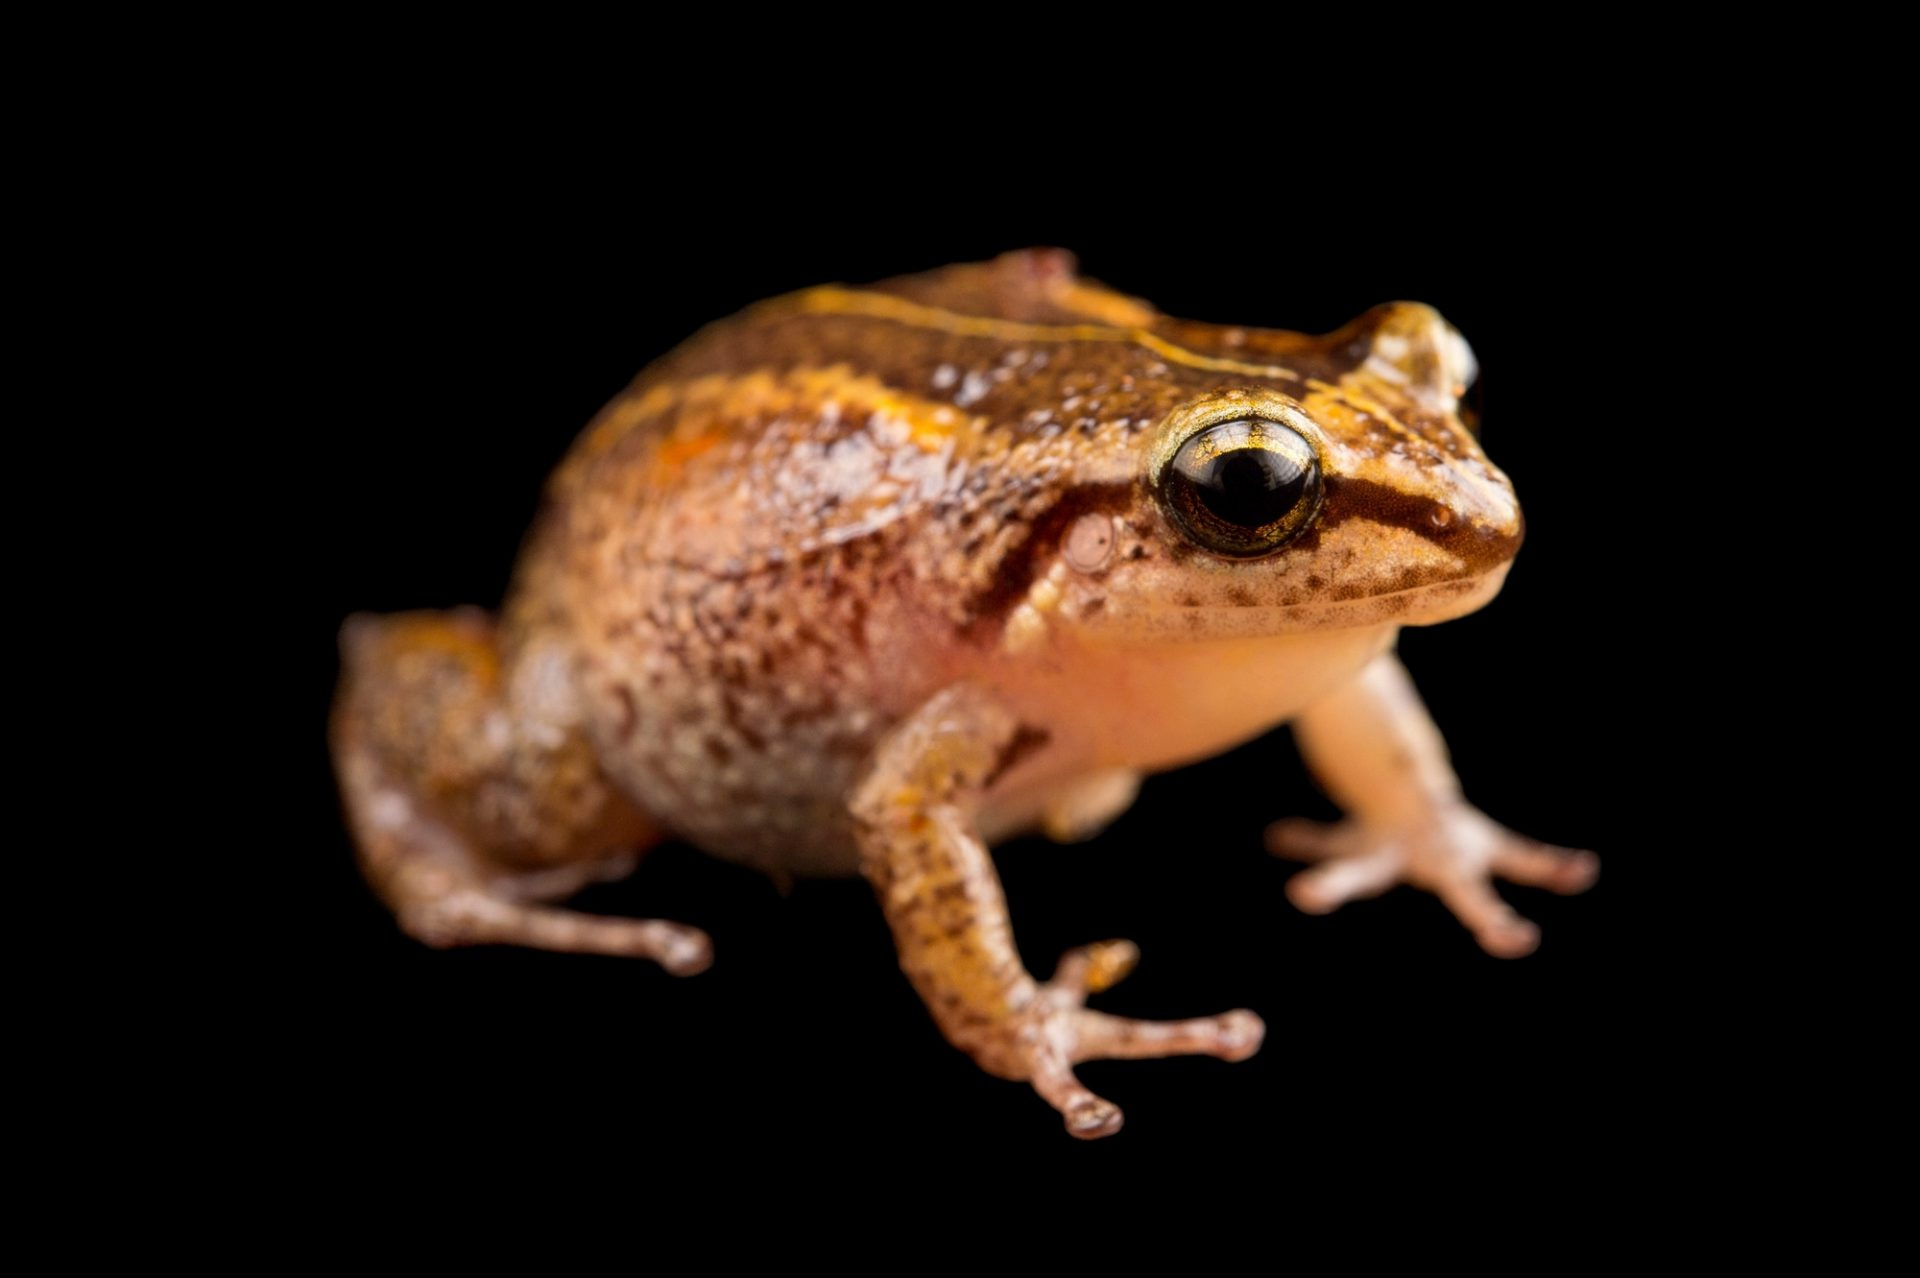 Photo: Mozart's frog (Eleutherodactylus Amadeus) at the Philadelphia Zoo. This species is found in Haiti and is critically endangered.